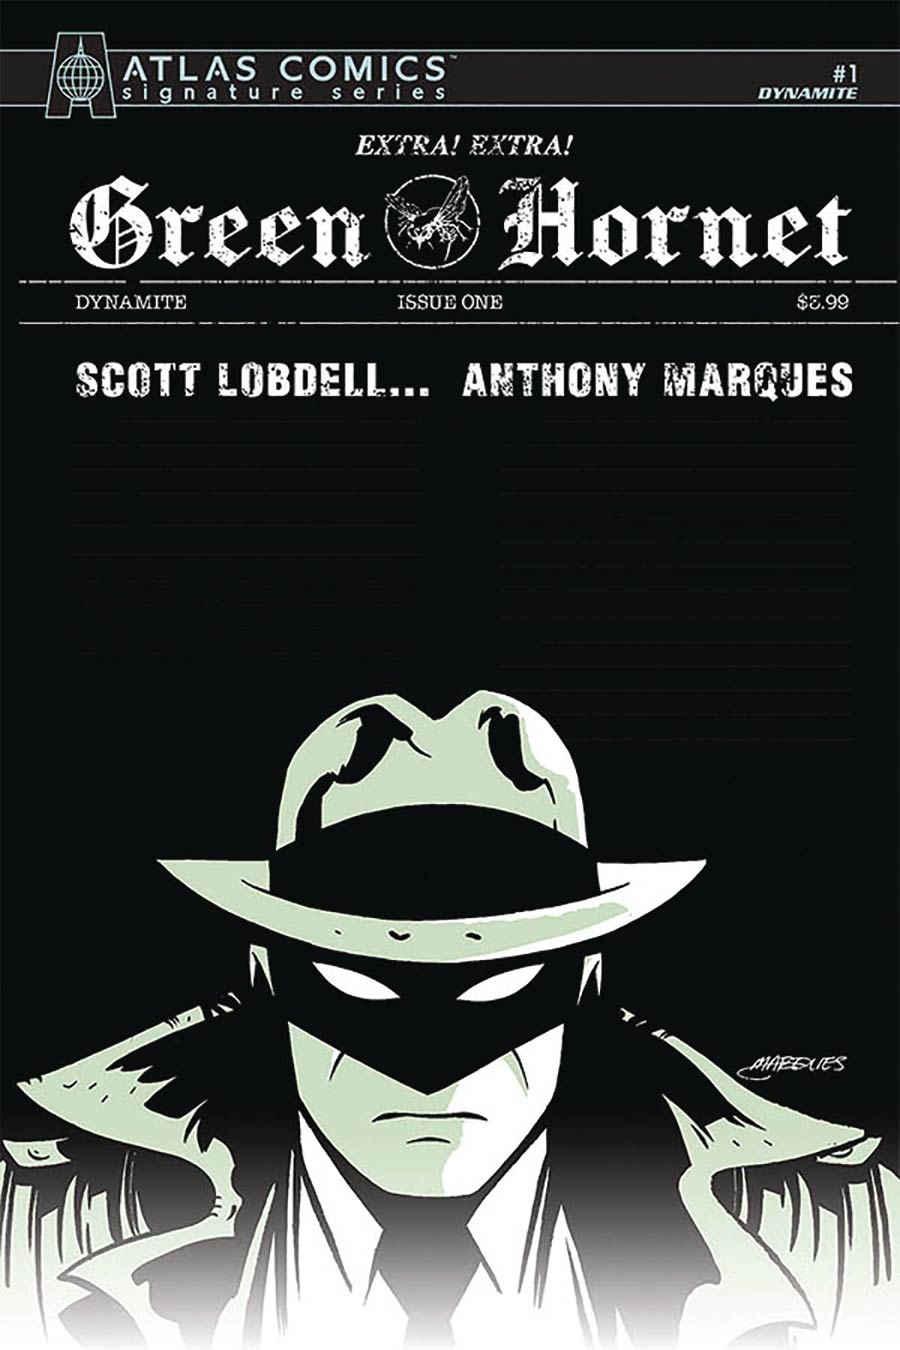 Green Hornet Vol 5 #1 Cover N Atlas Comics Signature Series Signed By Anthony Marques